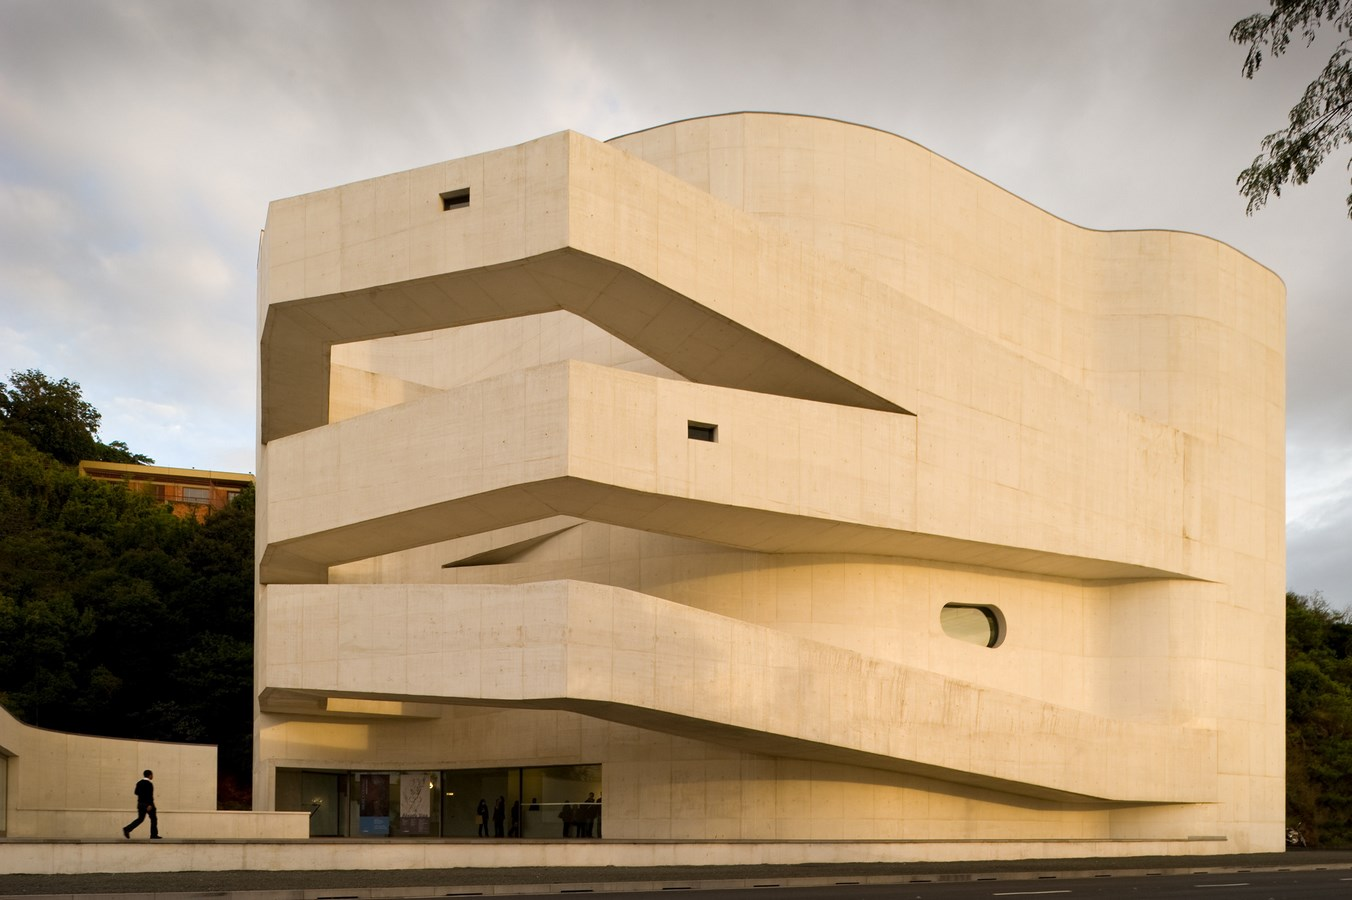 15 Projects by Alvaro Siza every Architect Must Visit! - Iberê Camargo Foundation